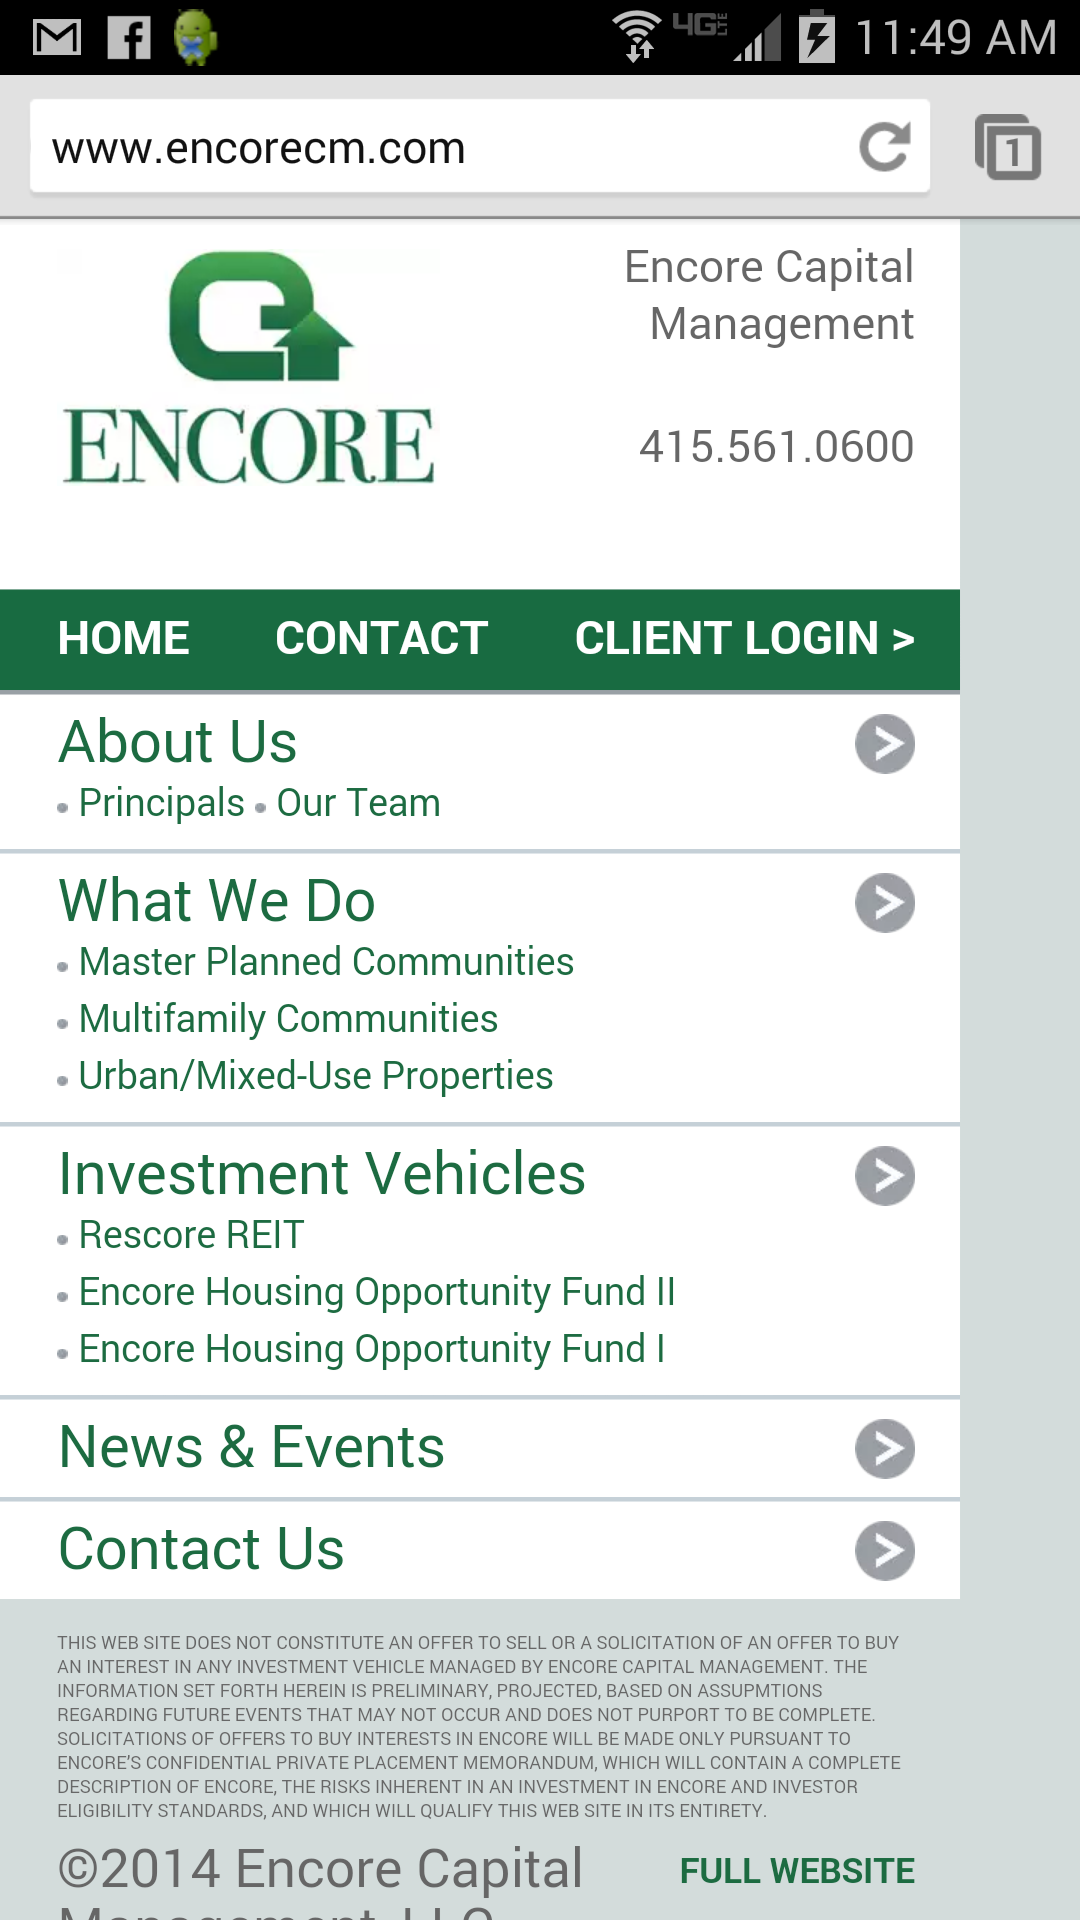 encorecm.com mobile homepage